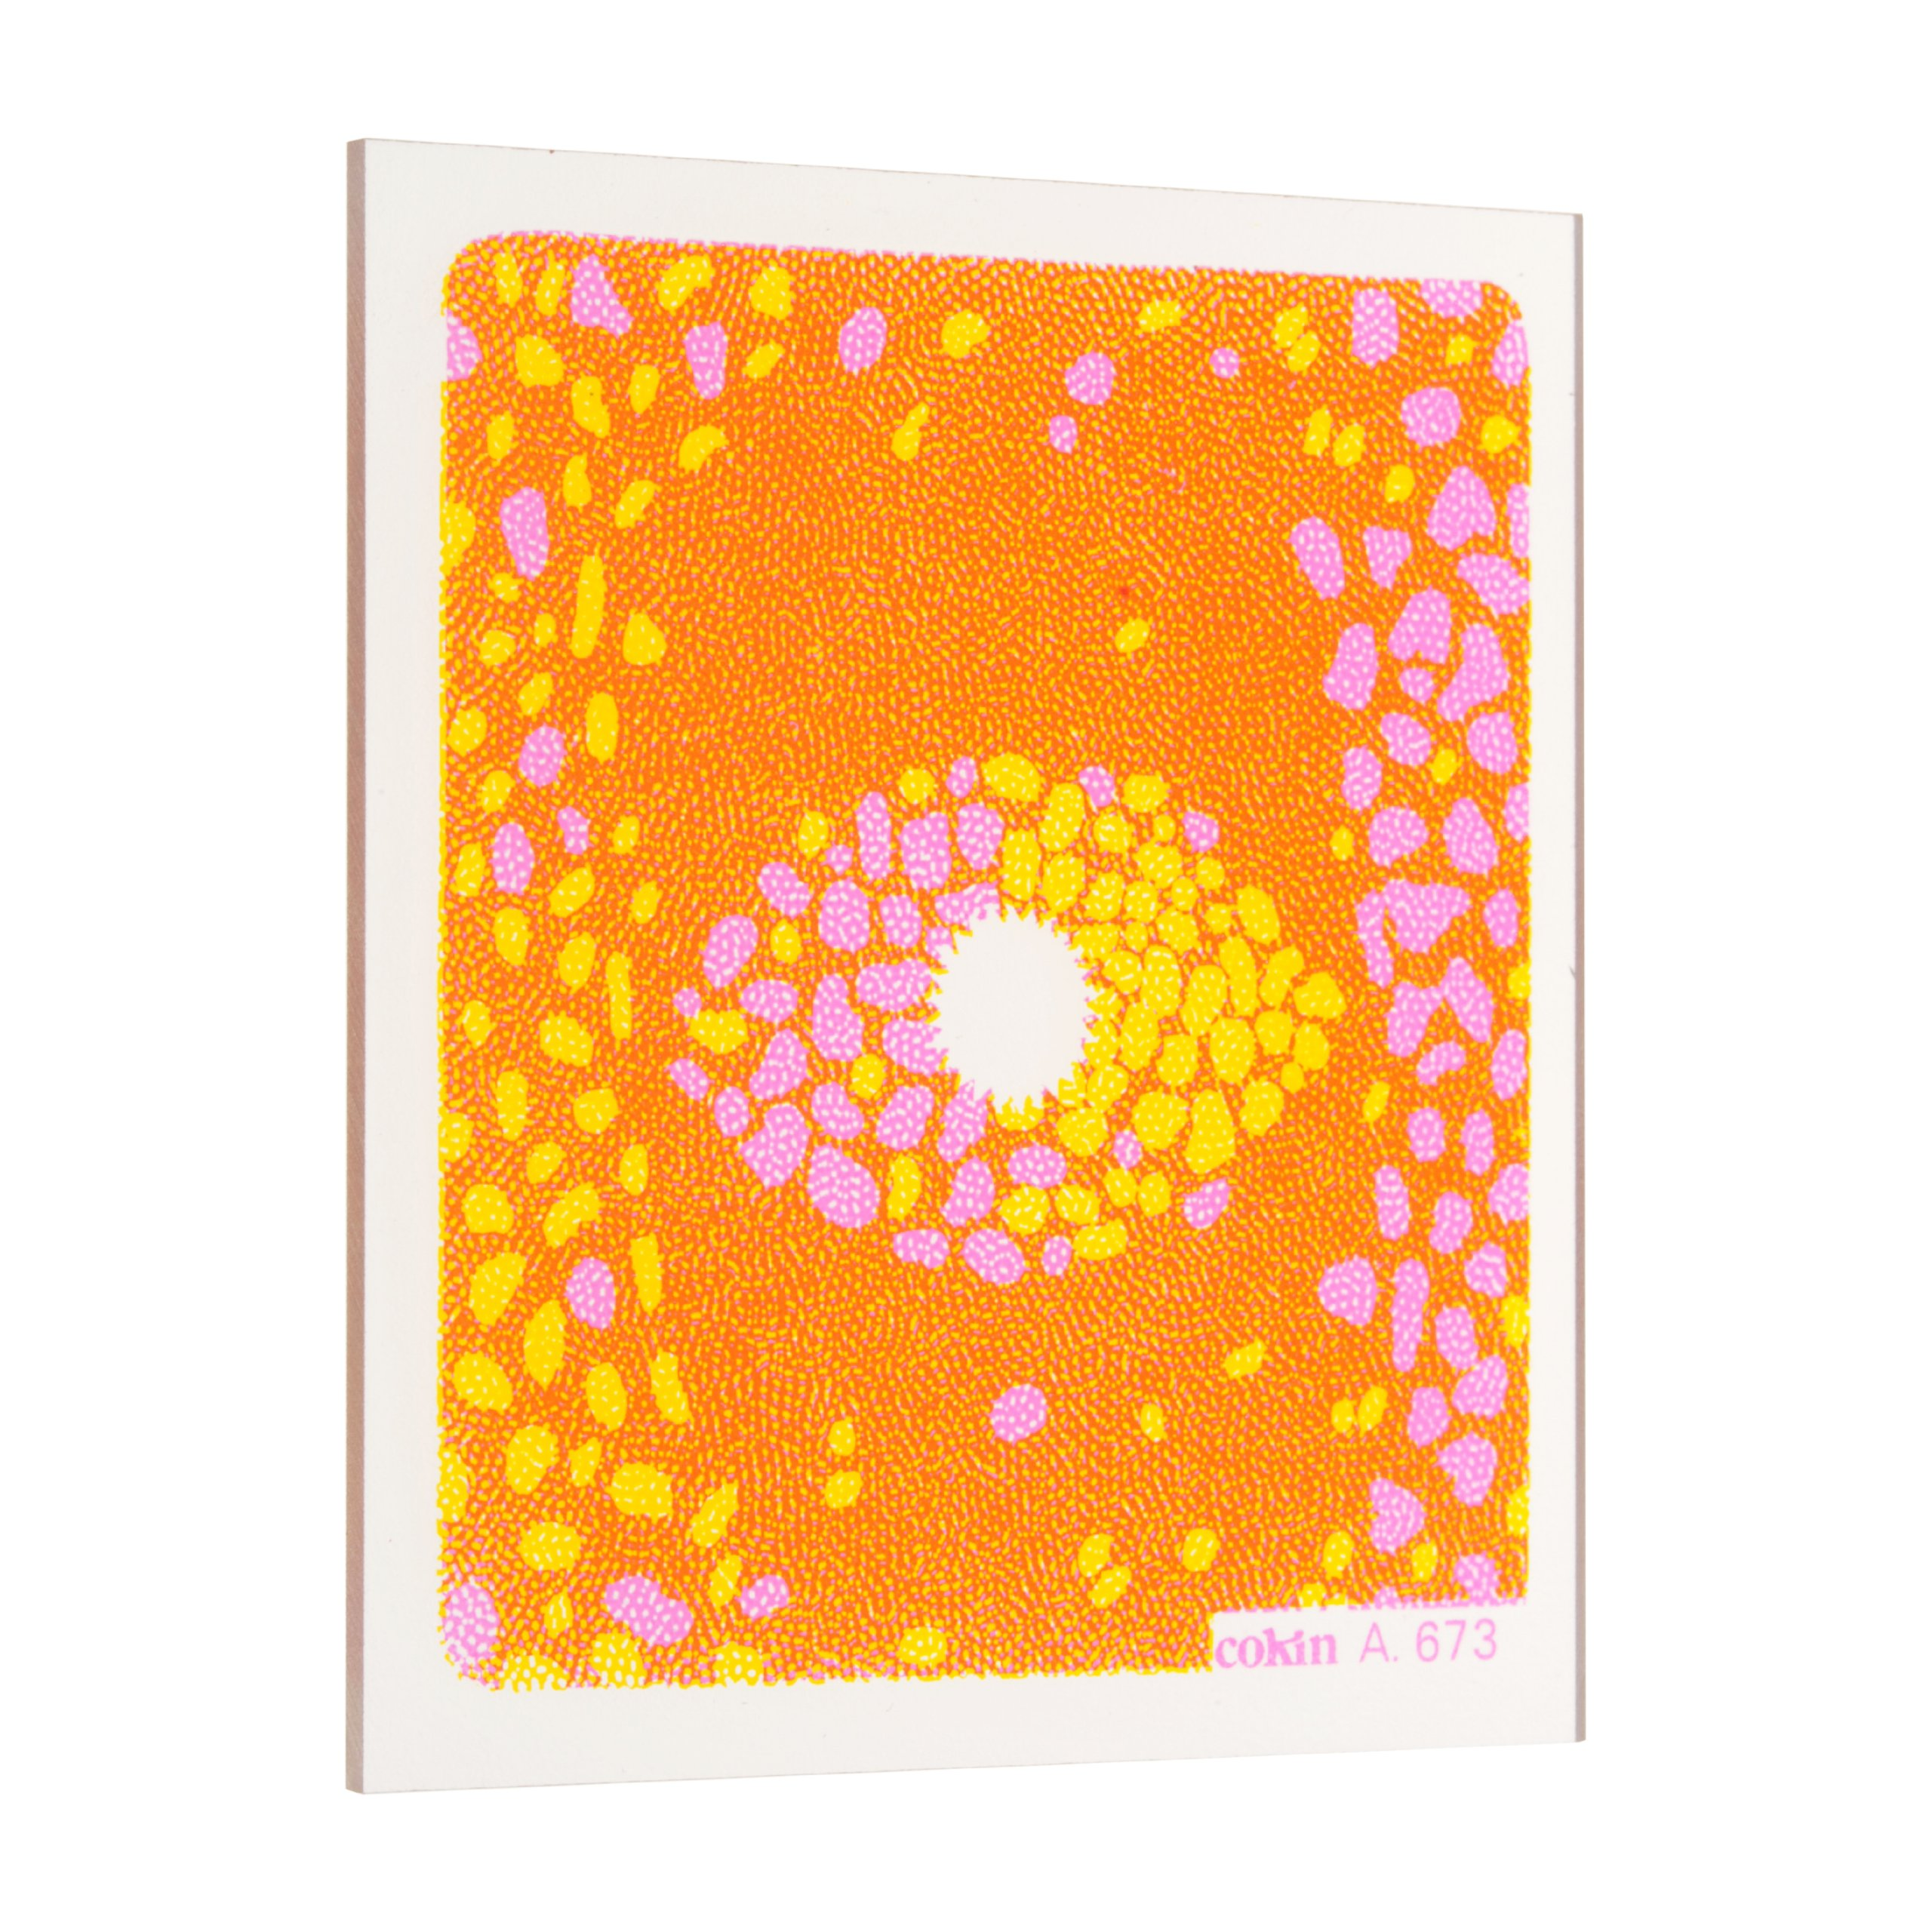 Cokin A673 Filter A Yellow/Pink Bi-Color by Cokin